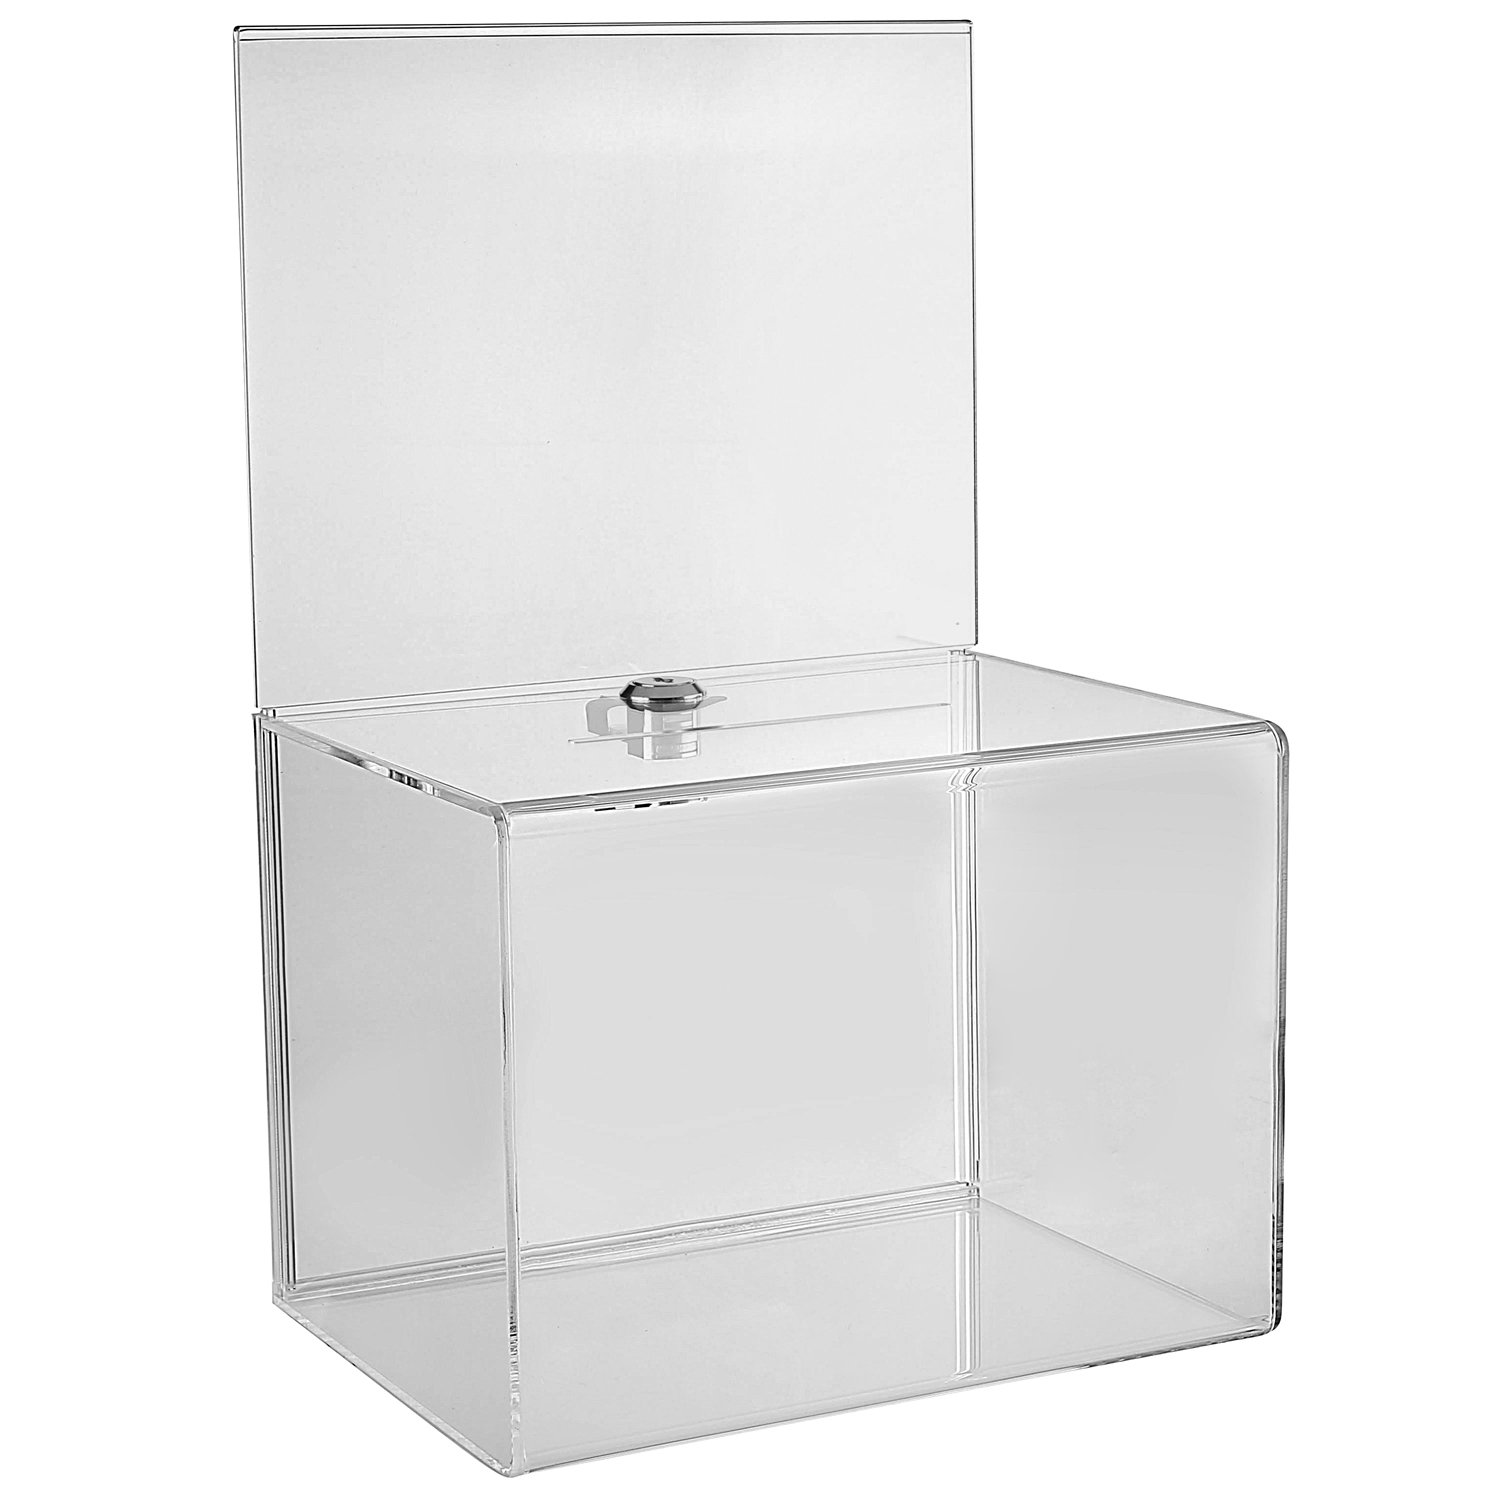 MCB - Wide Donation Box - Ballot Box - Suggestion Box - Acrylic Box - Tip Box- With Large Display Area (2 Pack)